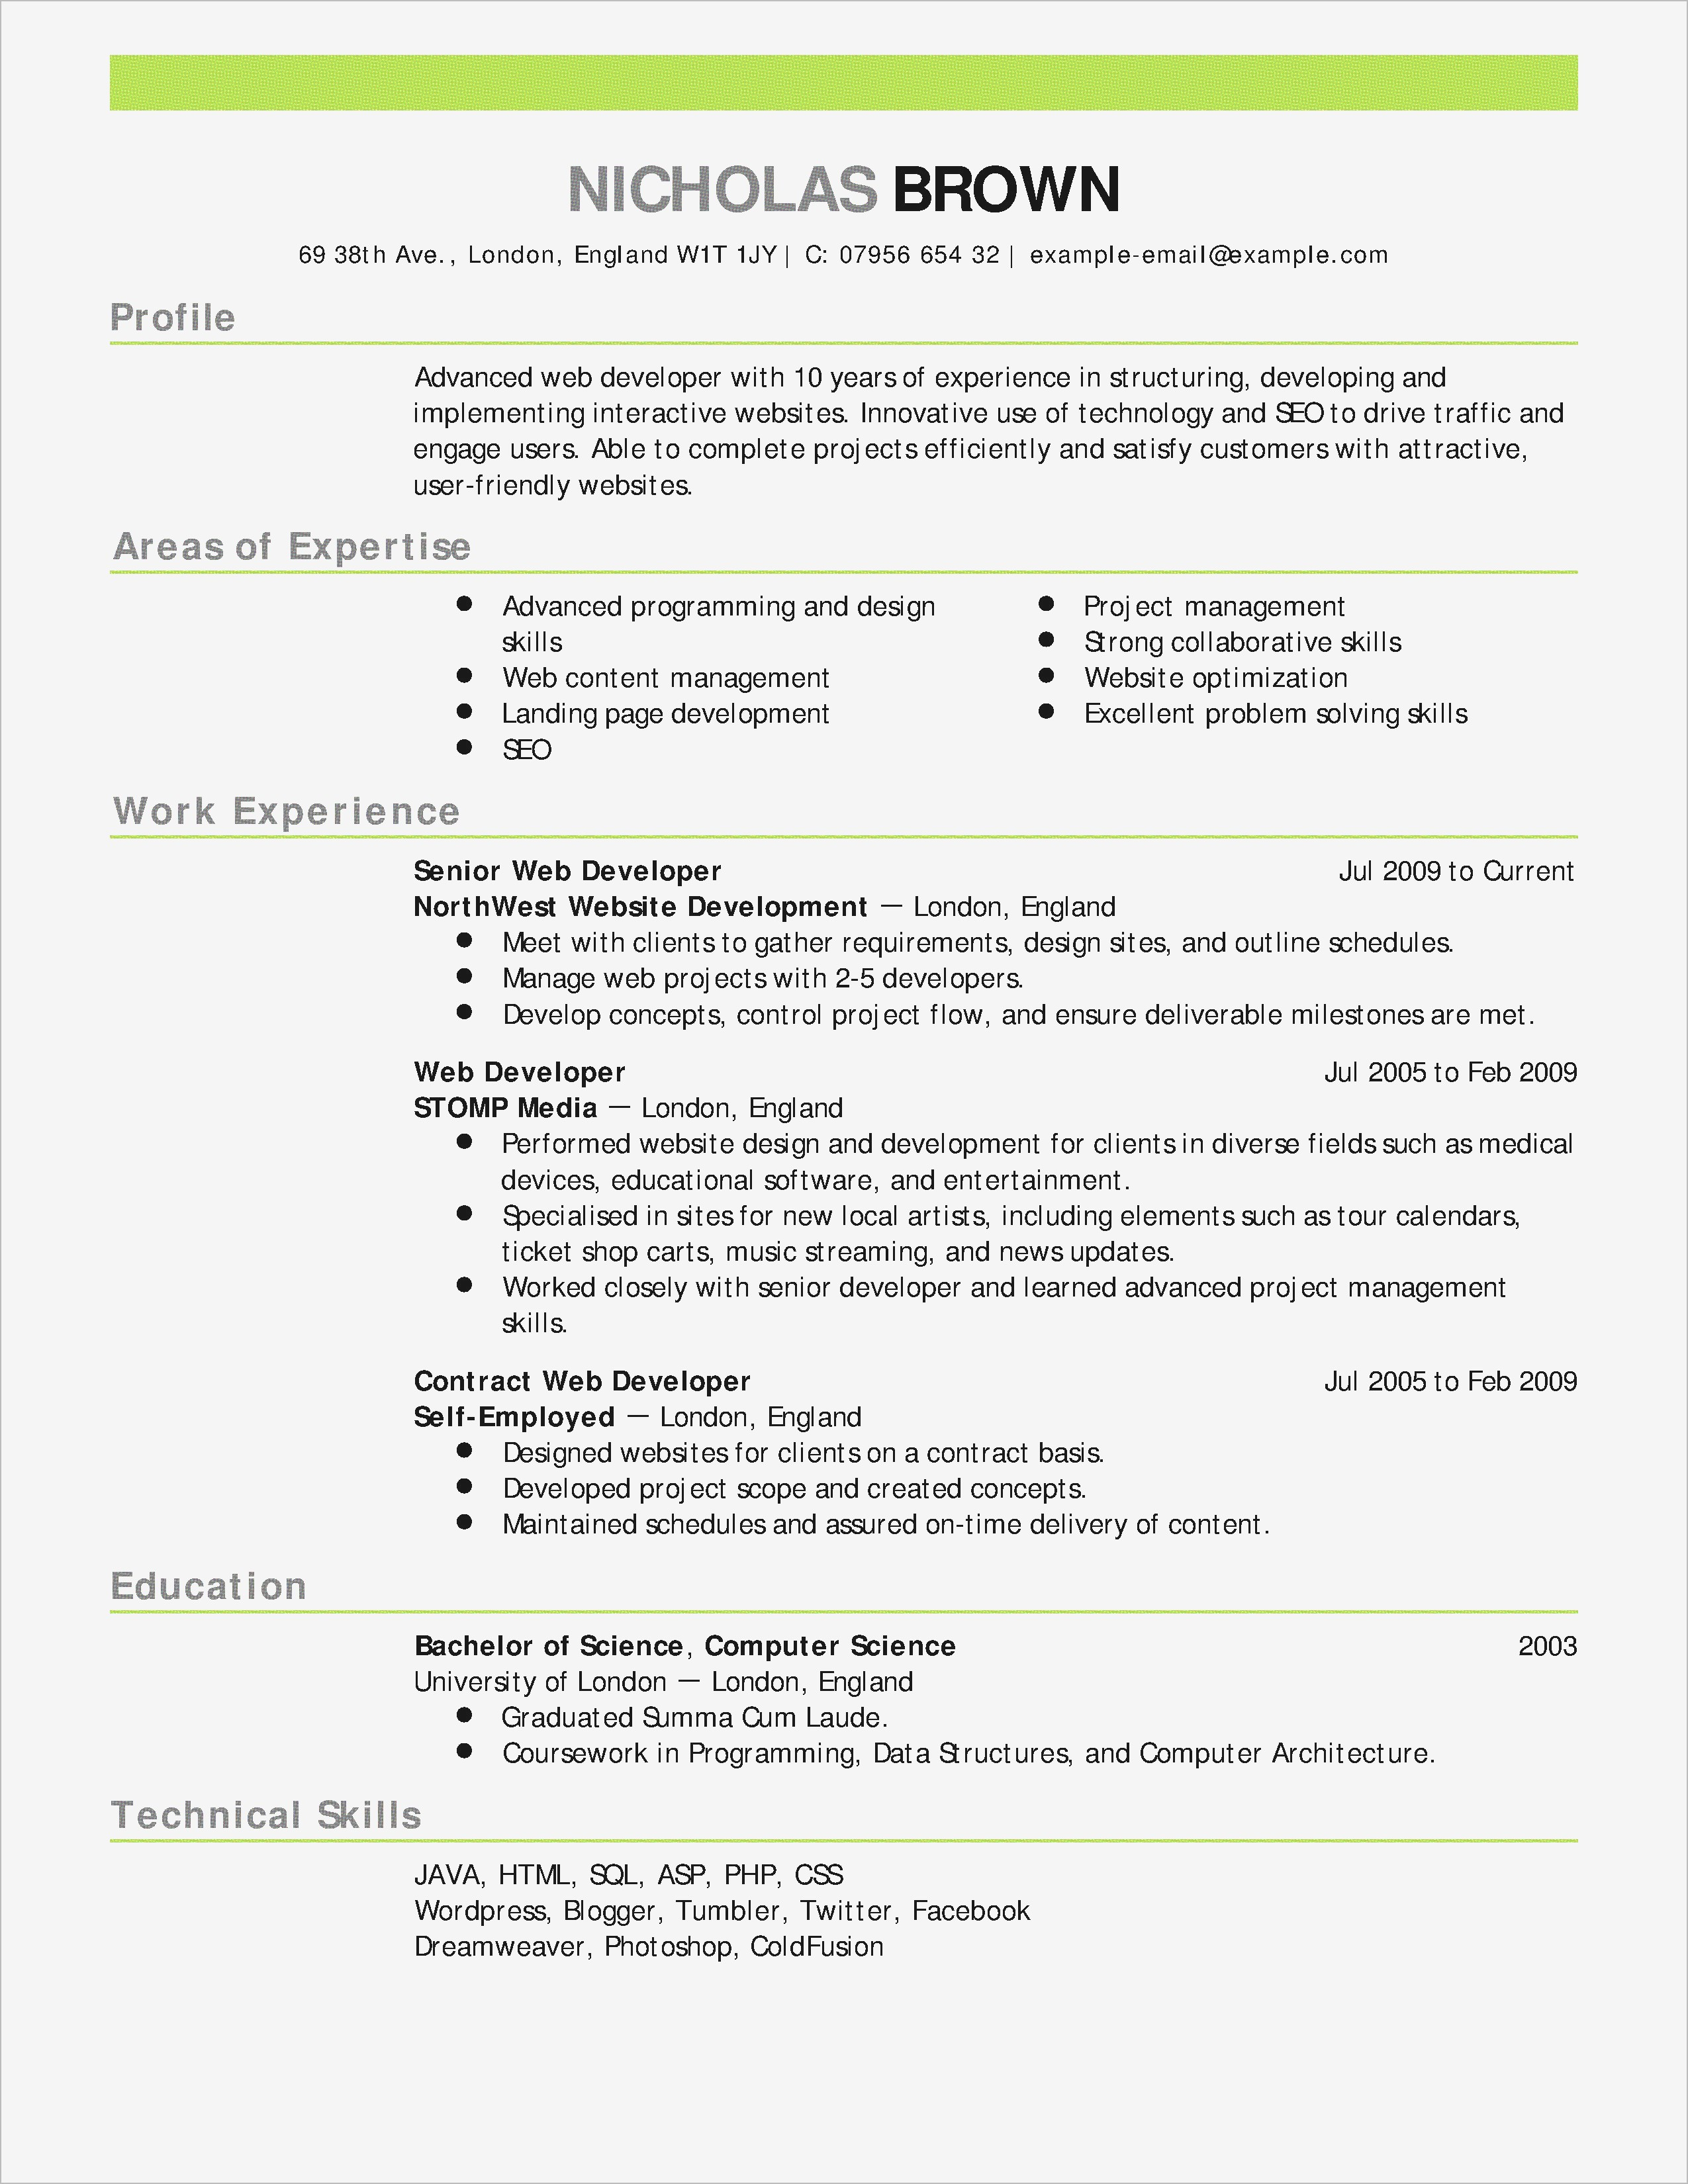 Cover Letter Template for Google Docs - Luxury Cover Letter Template Google Docs